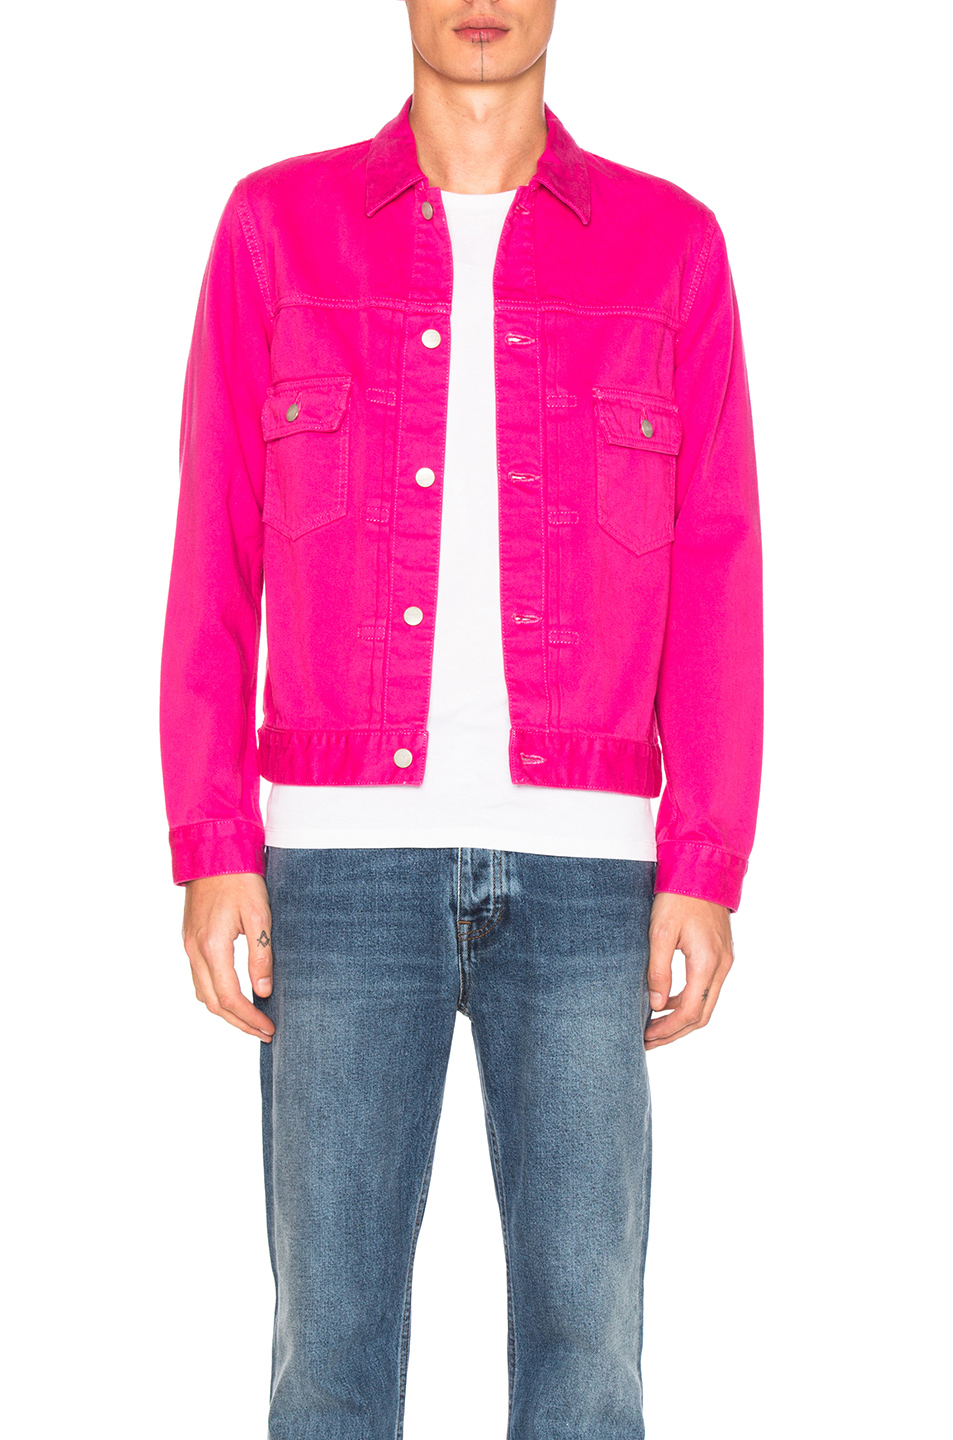 GANRYU Cotton Satin Jacket in Pink